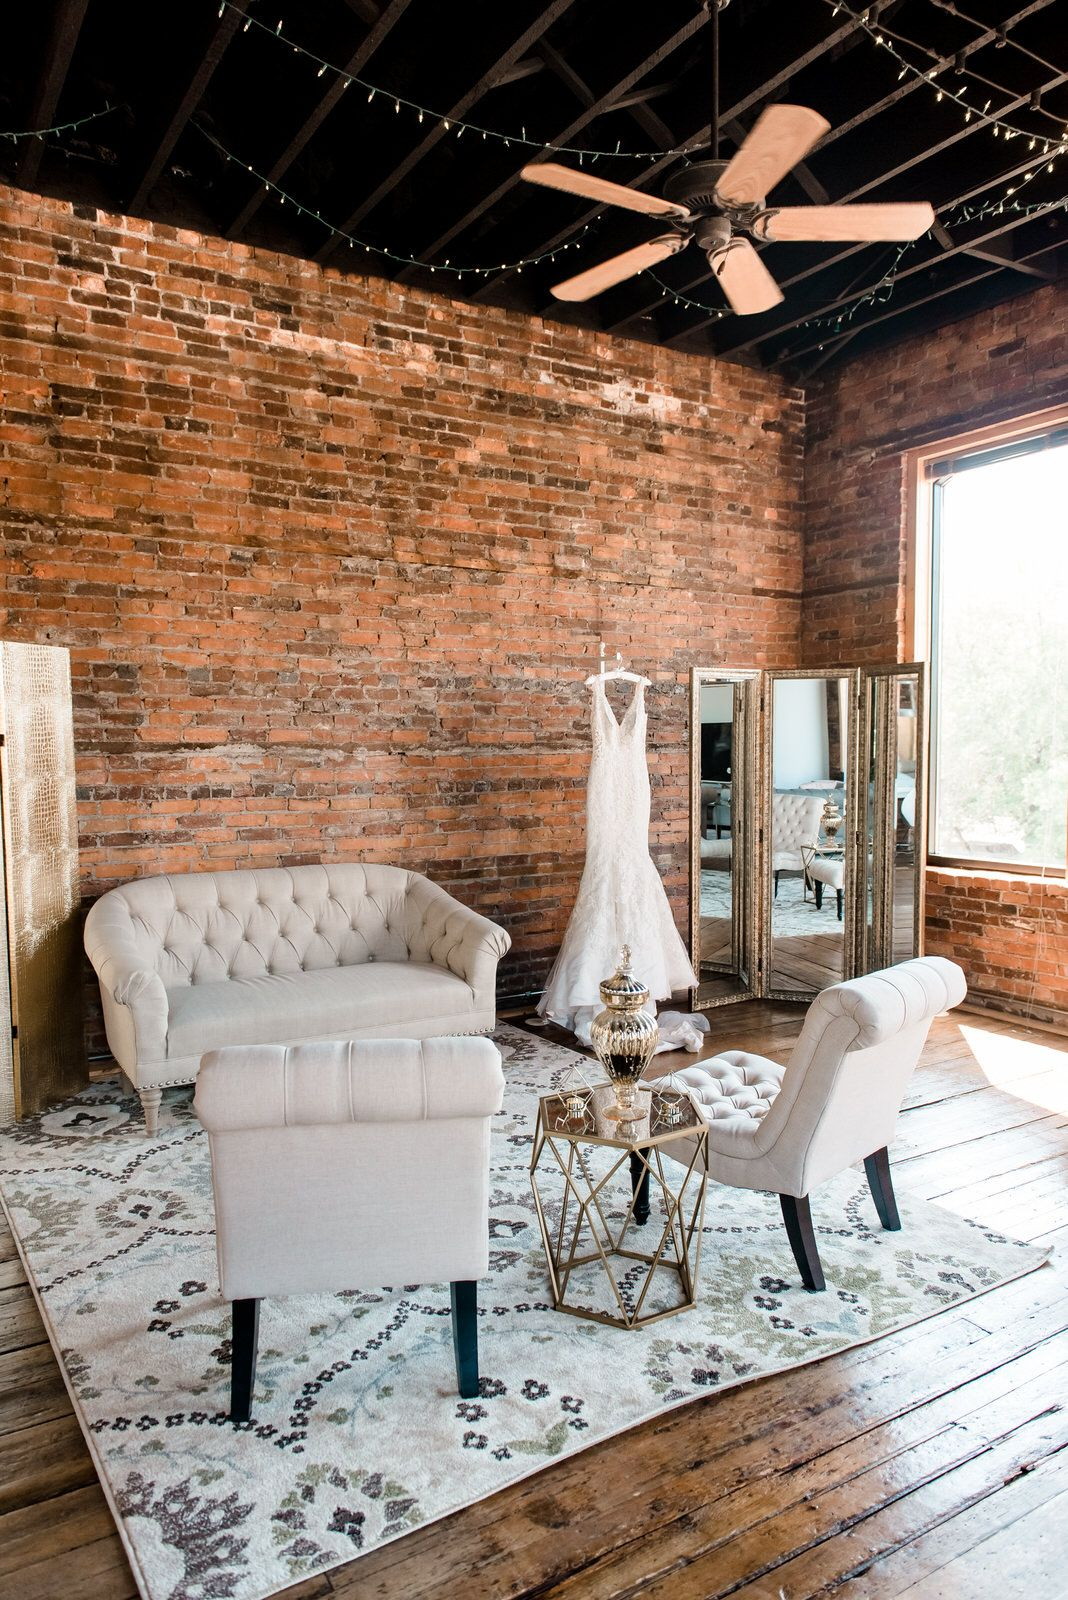 Dreamy Luxury Bridal Suite In Historic Building Brick Walls And Wood Floors Natu Photography Studio Spaces Photography Studio Decor Photography Studio Design Luxury bridal room pictures